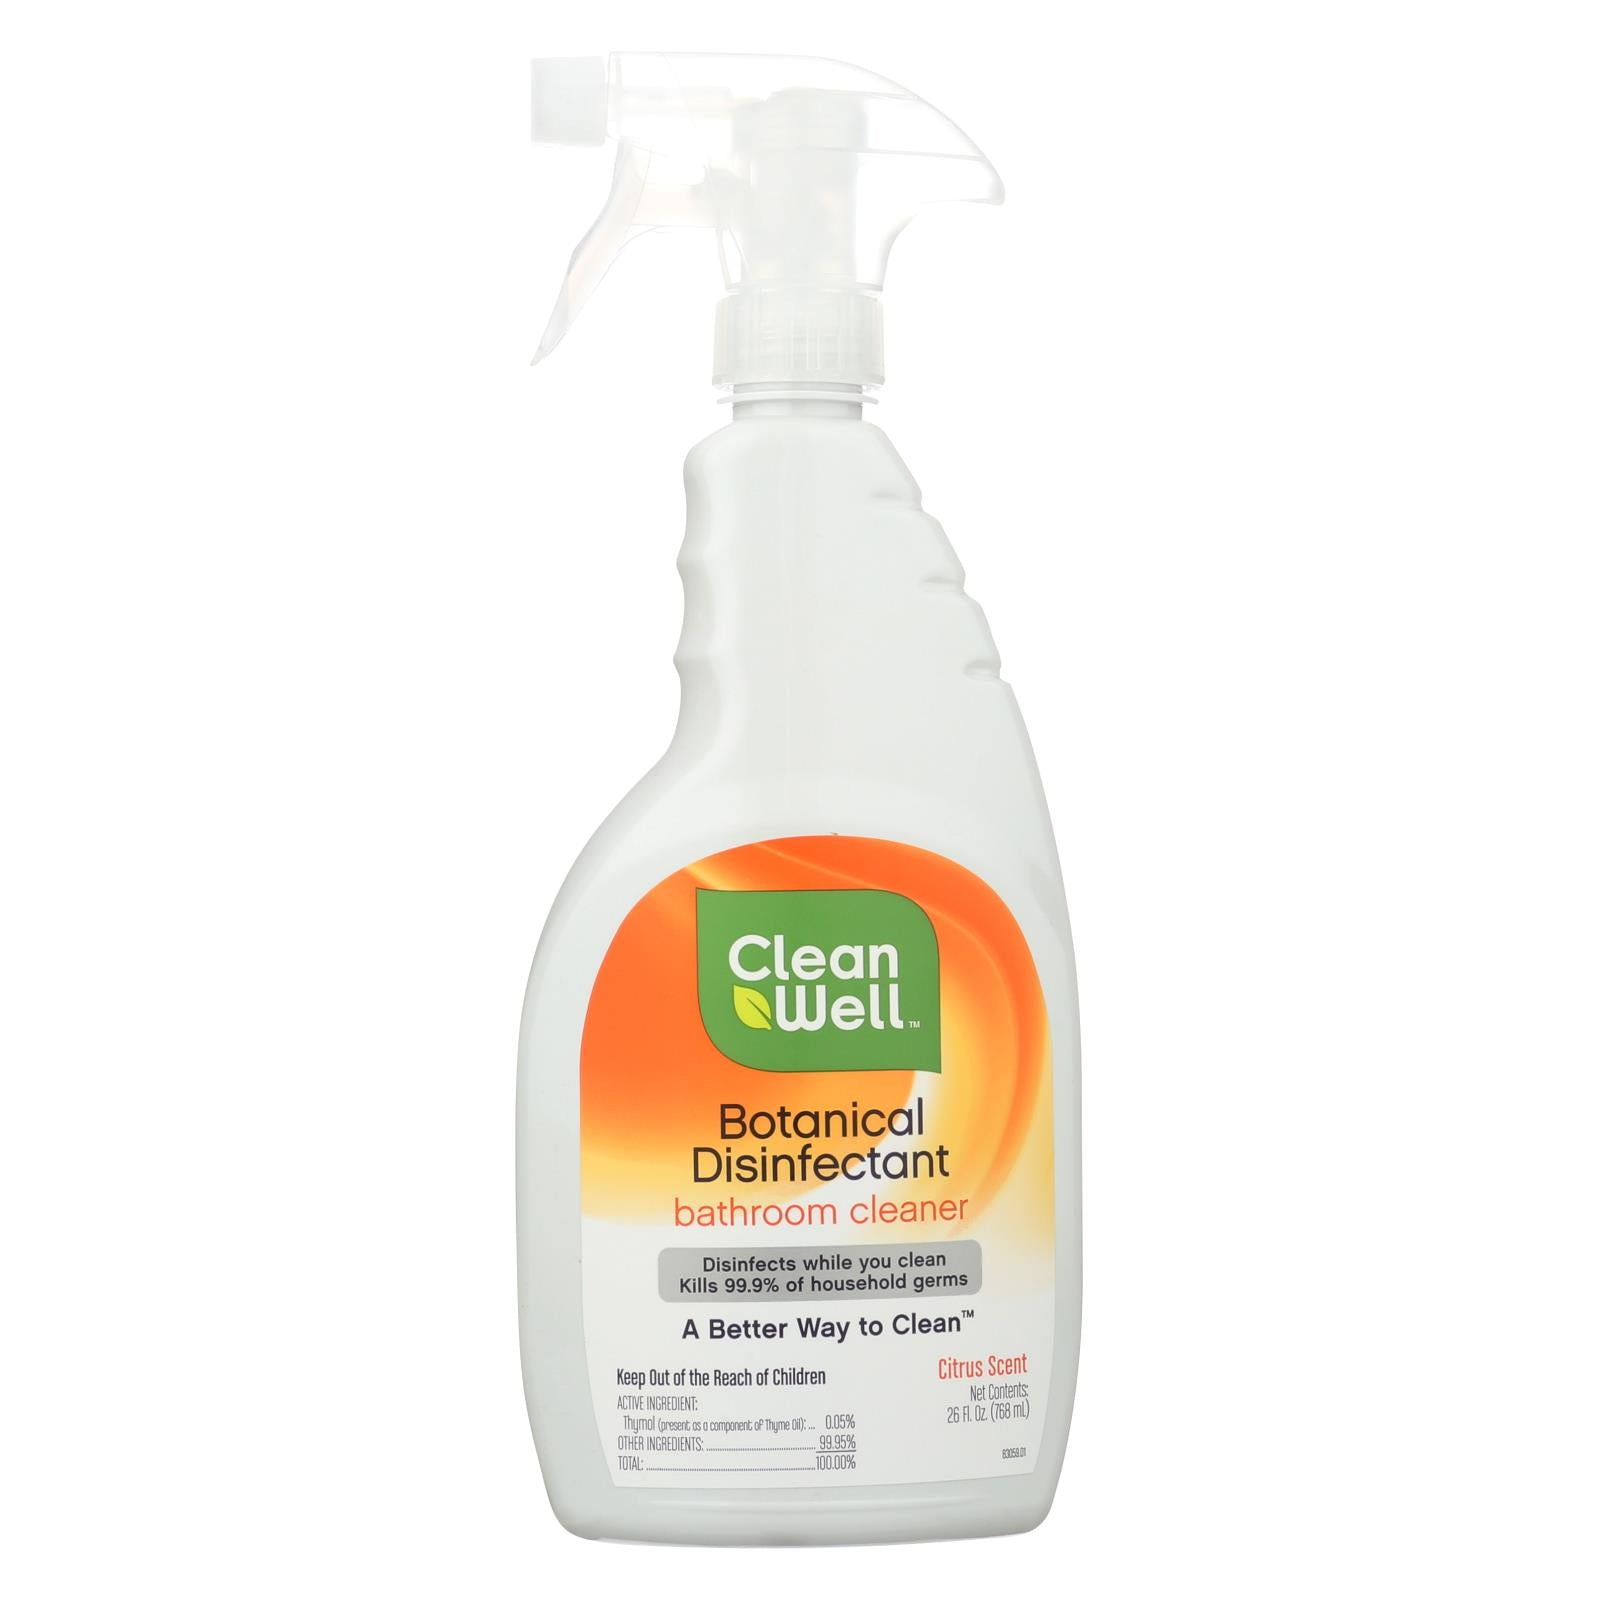 Buy CleanWell Bathroom Disinfectant Cleaner - 26 fl oz - Household Cleaners from Veroeco.com